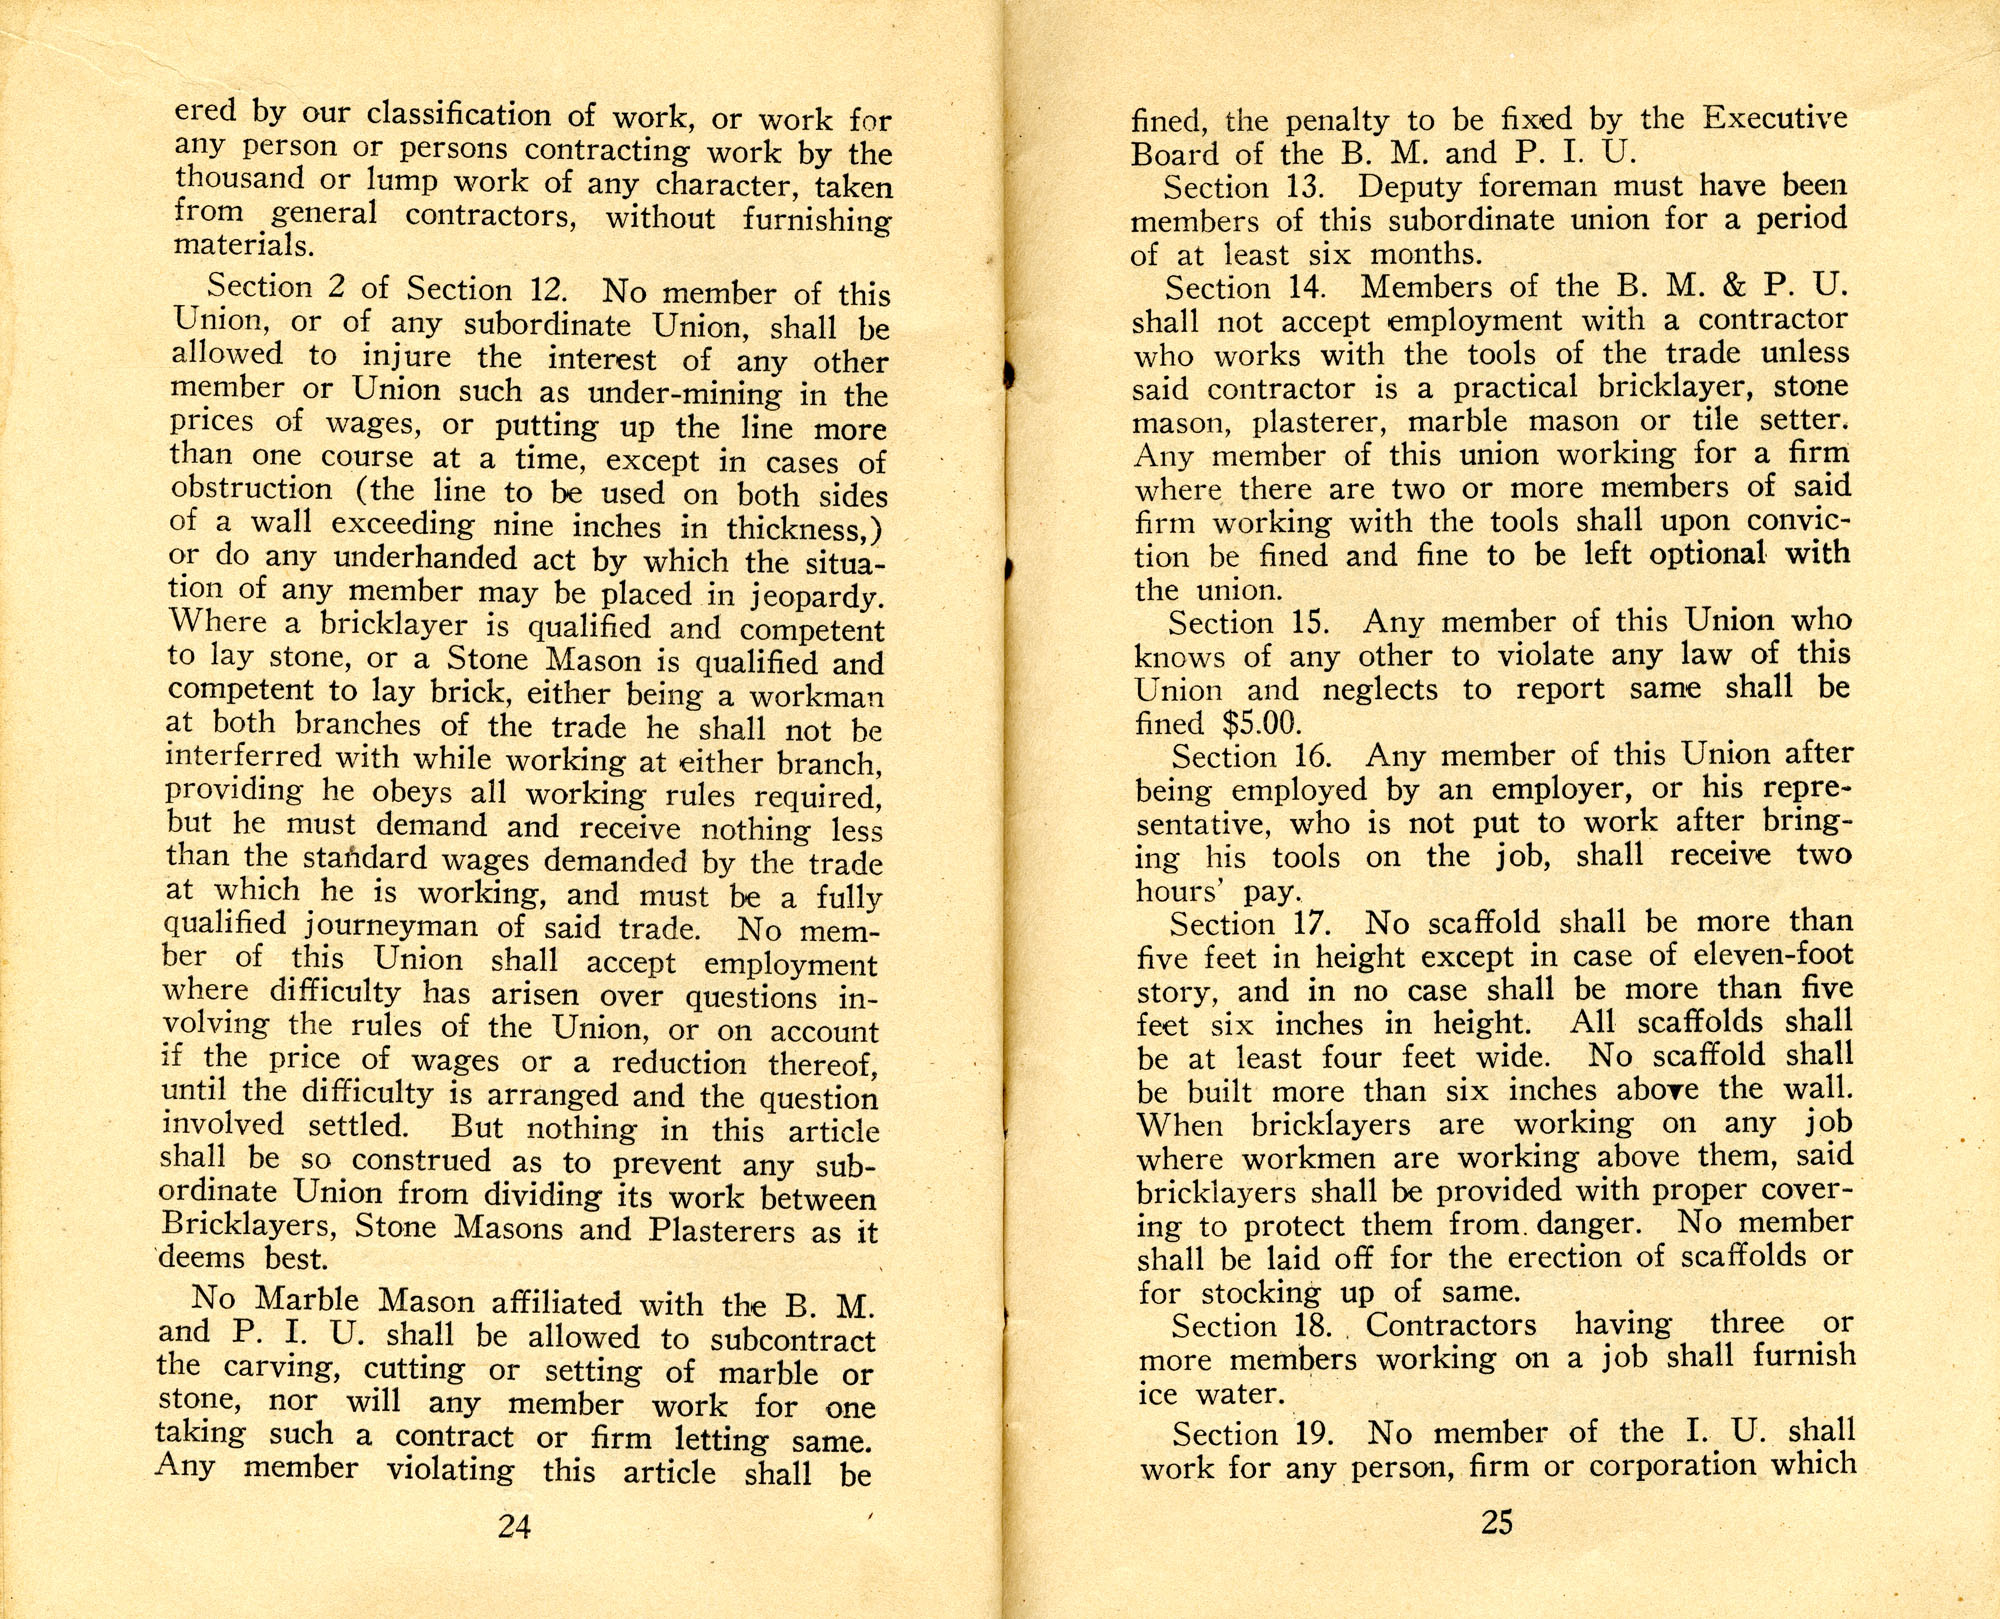 Constitution, by-laws, working code and rules of order, Page 13